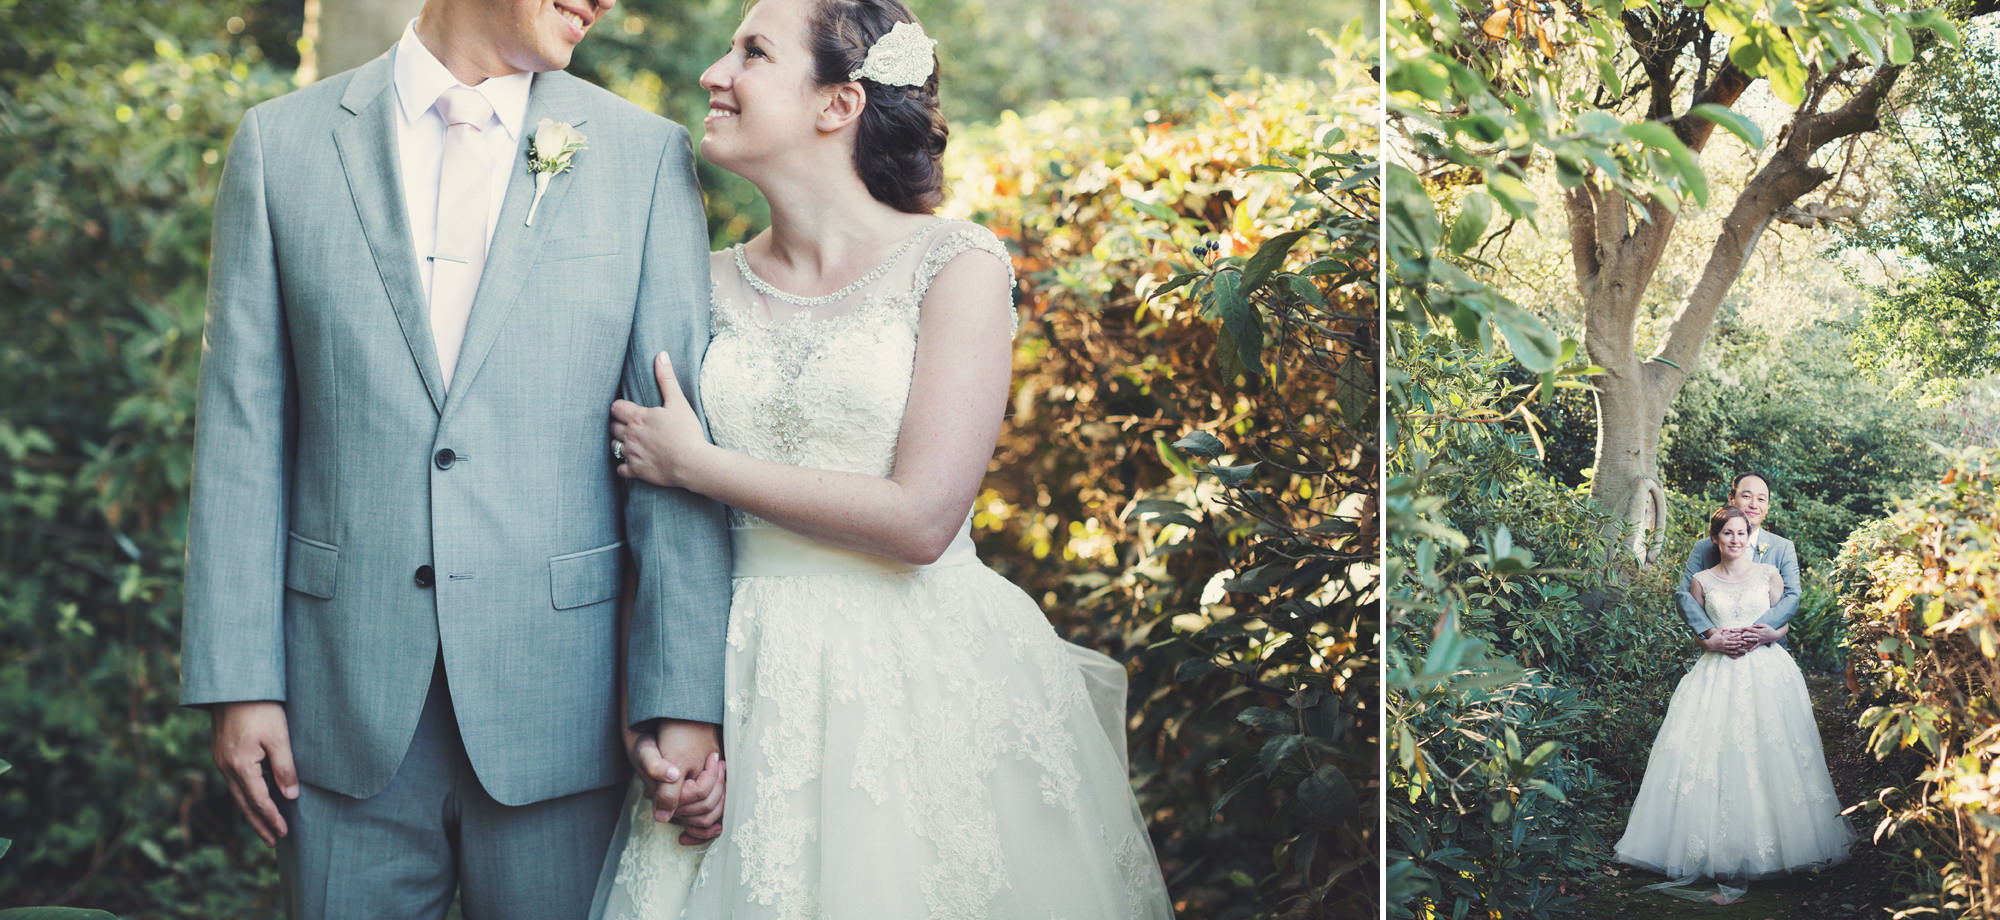 Garden Valley Ranch Wedding@Anne-Claire Brun 64